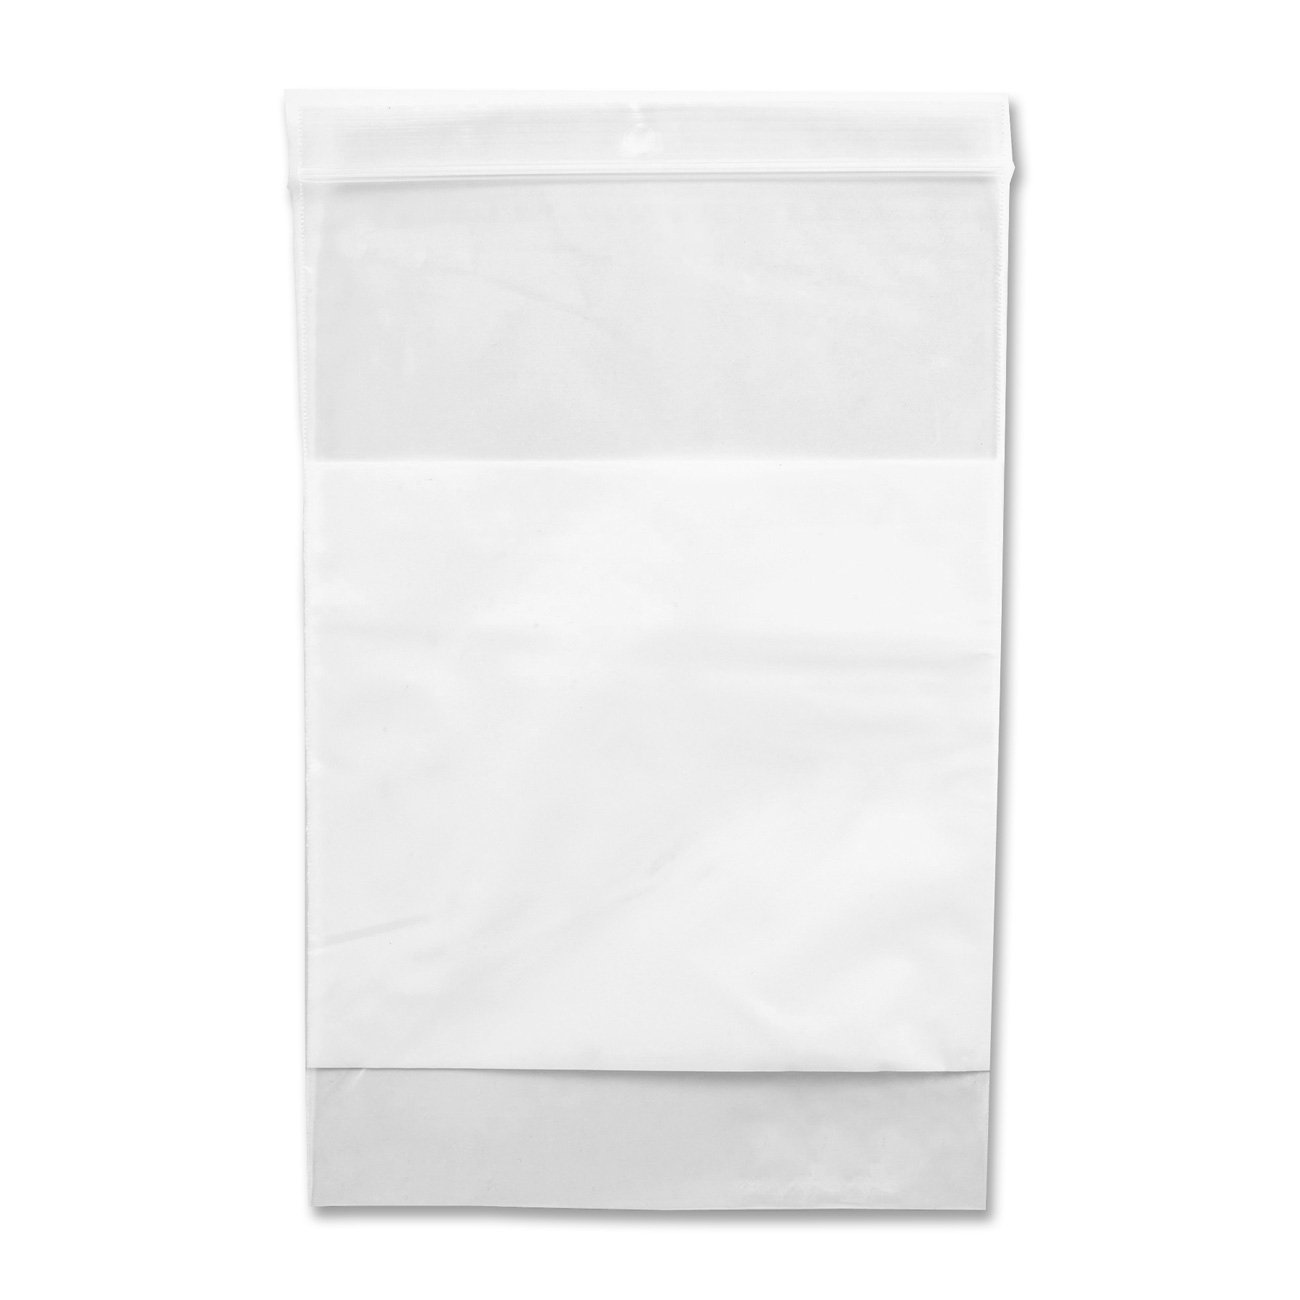 "Crownhill Reclosable Poly Bag 12"" x 9"" - 100/Pack"